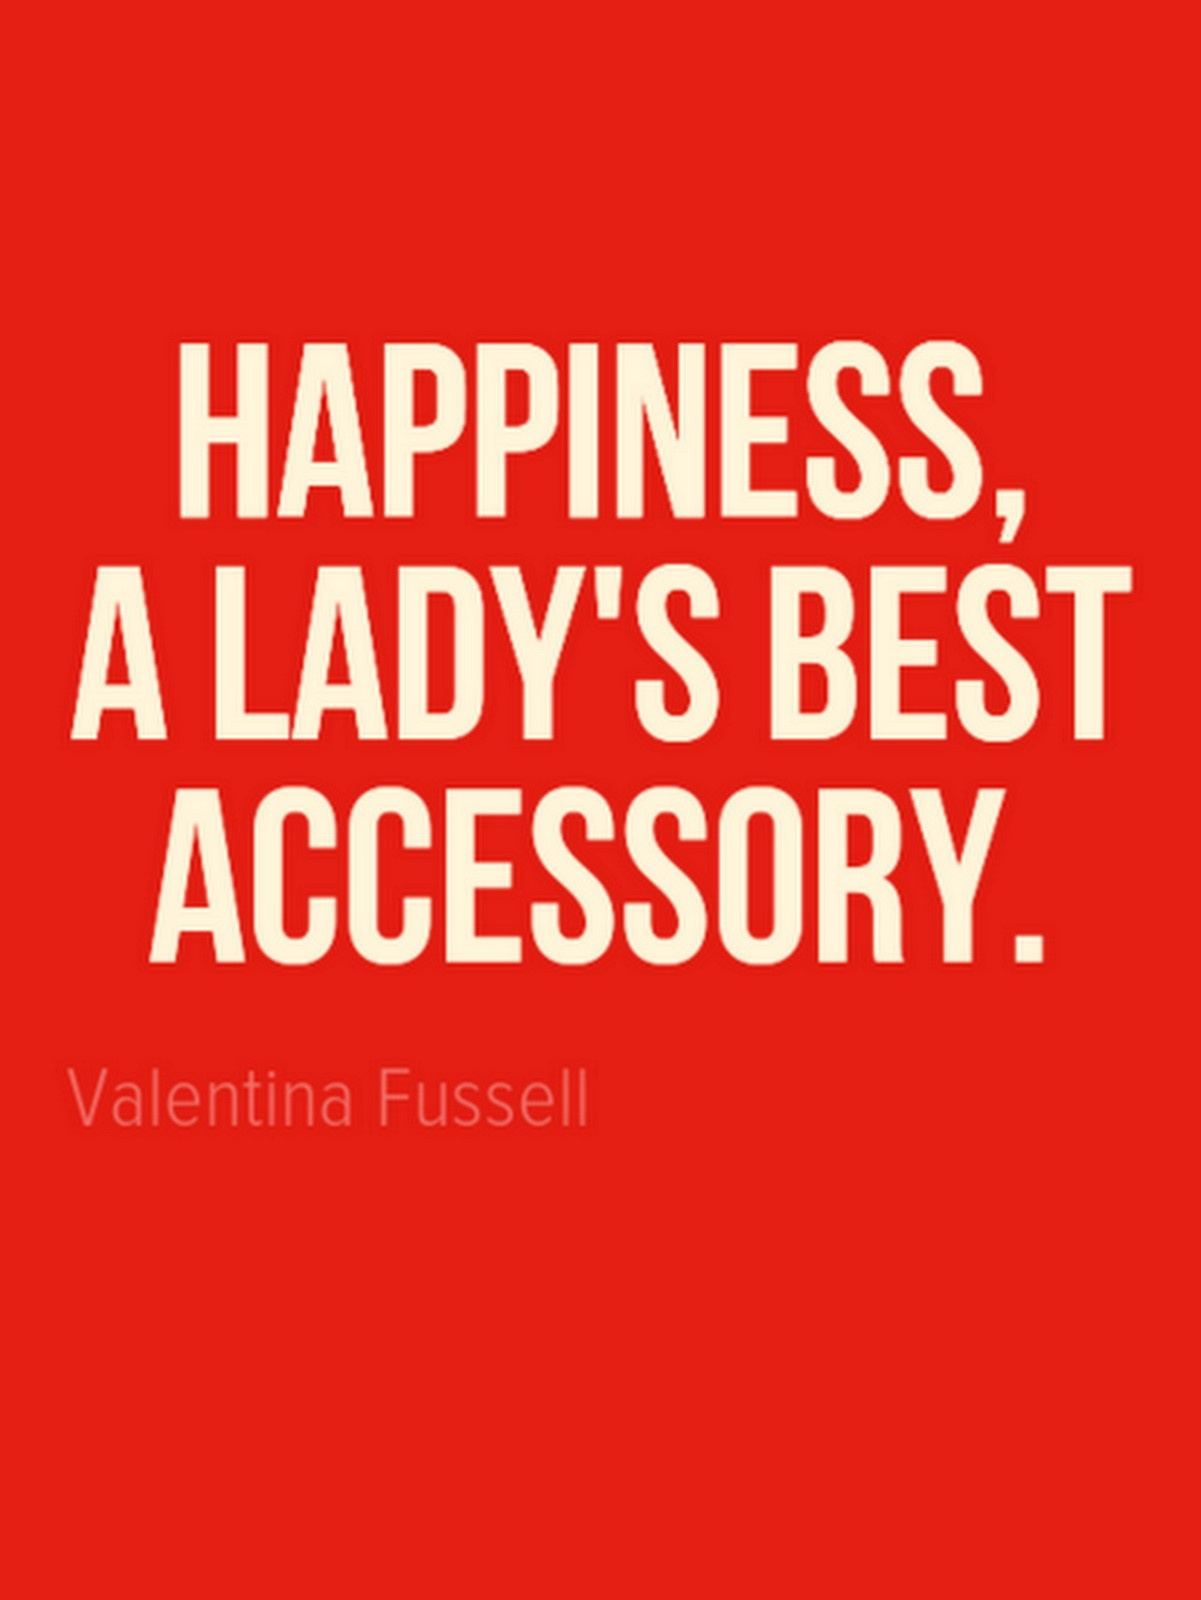 Happiness Best Accessory :: Valentina Fussell